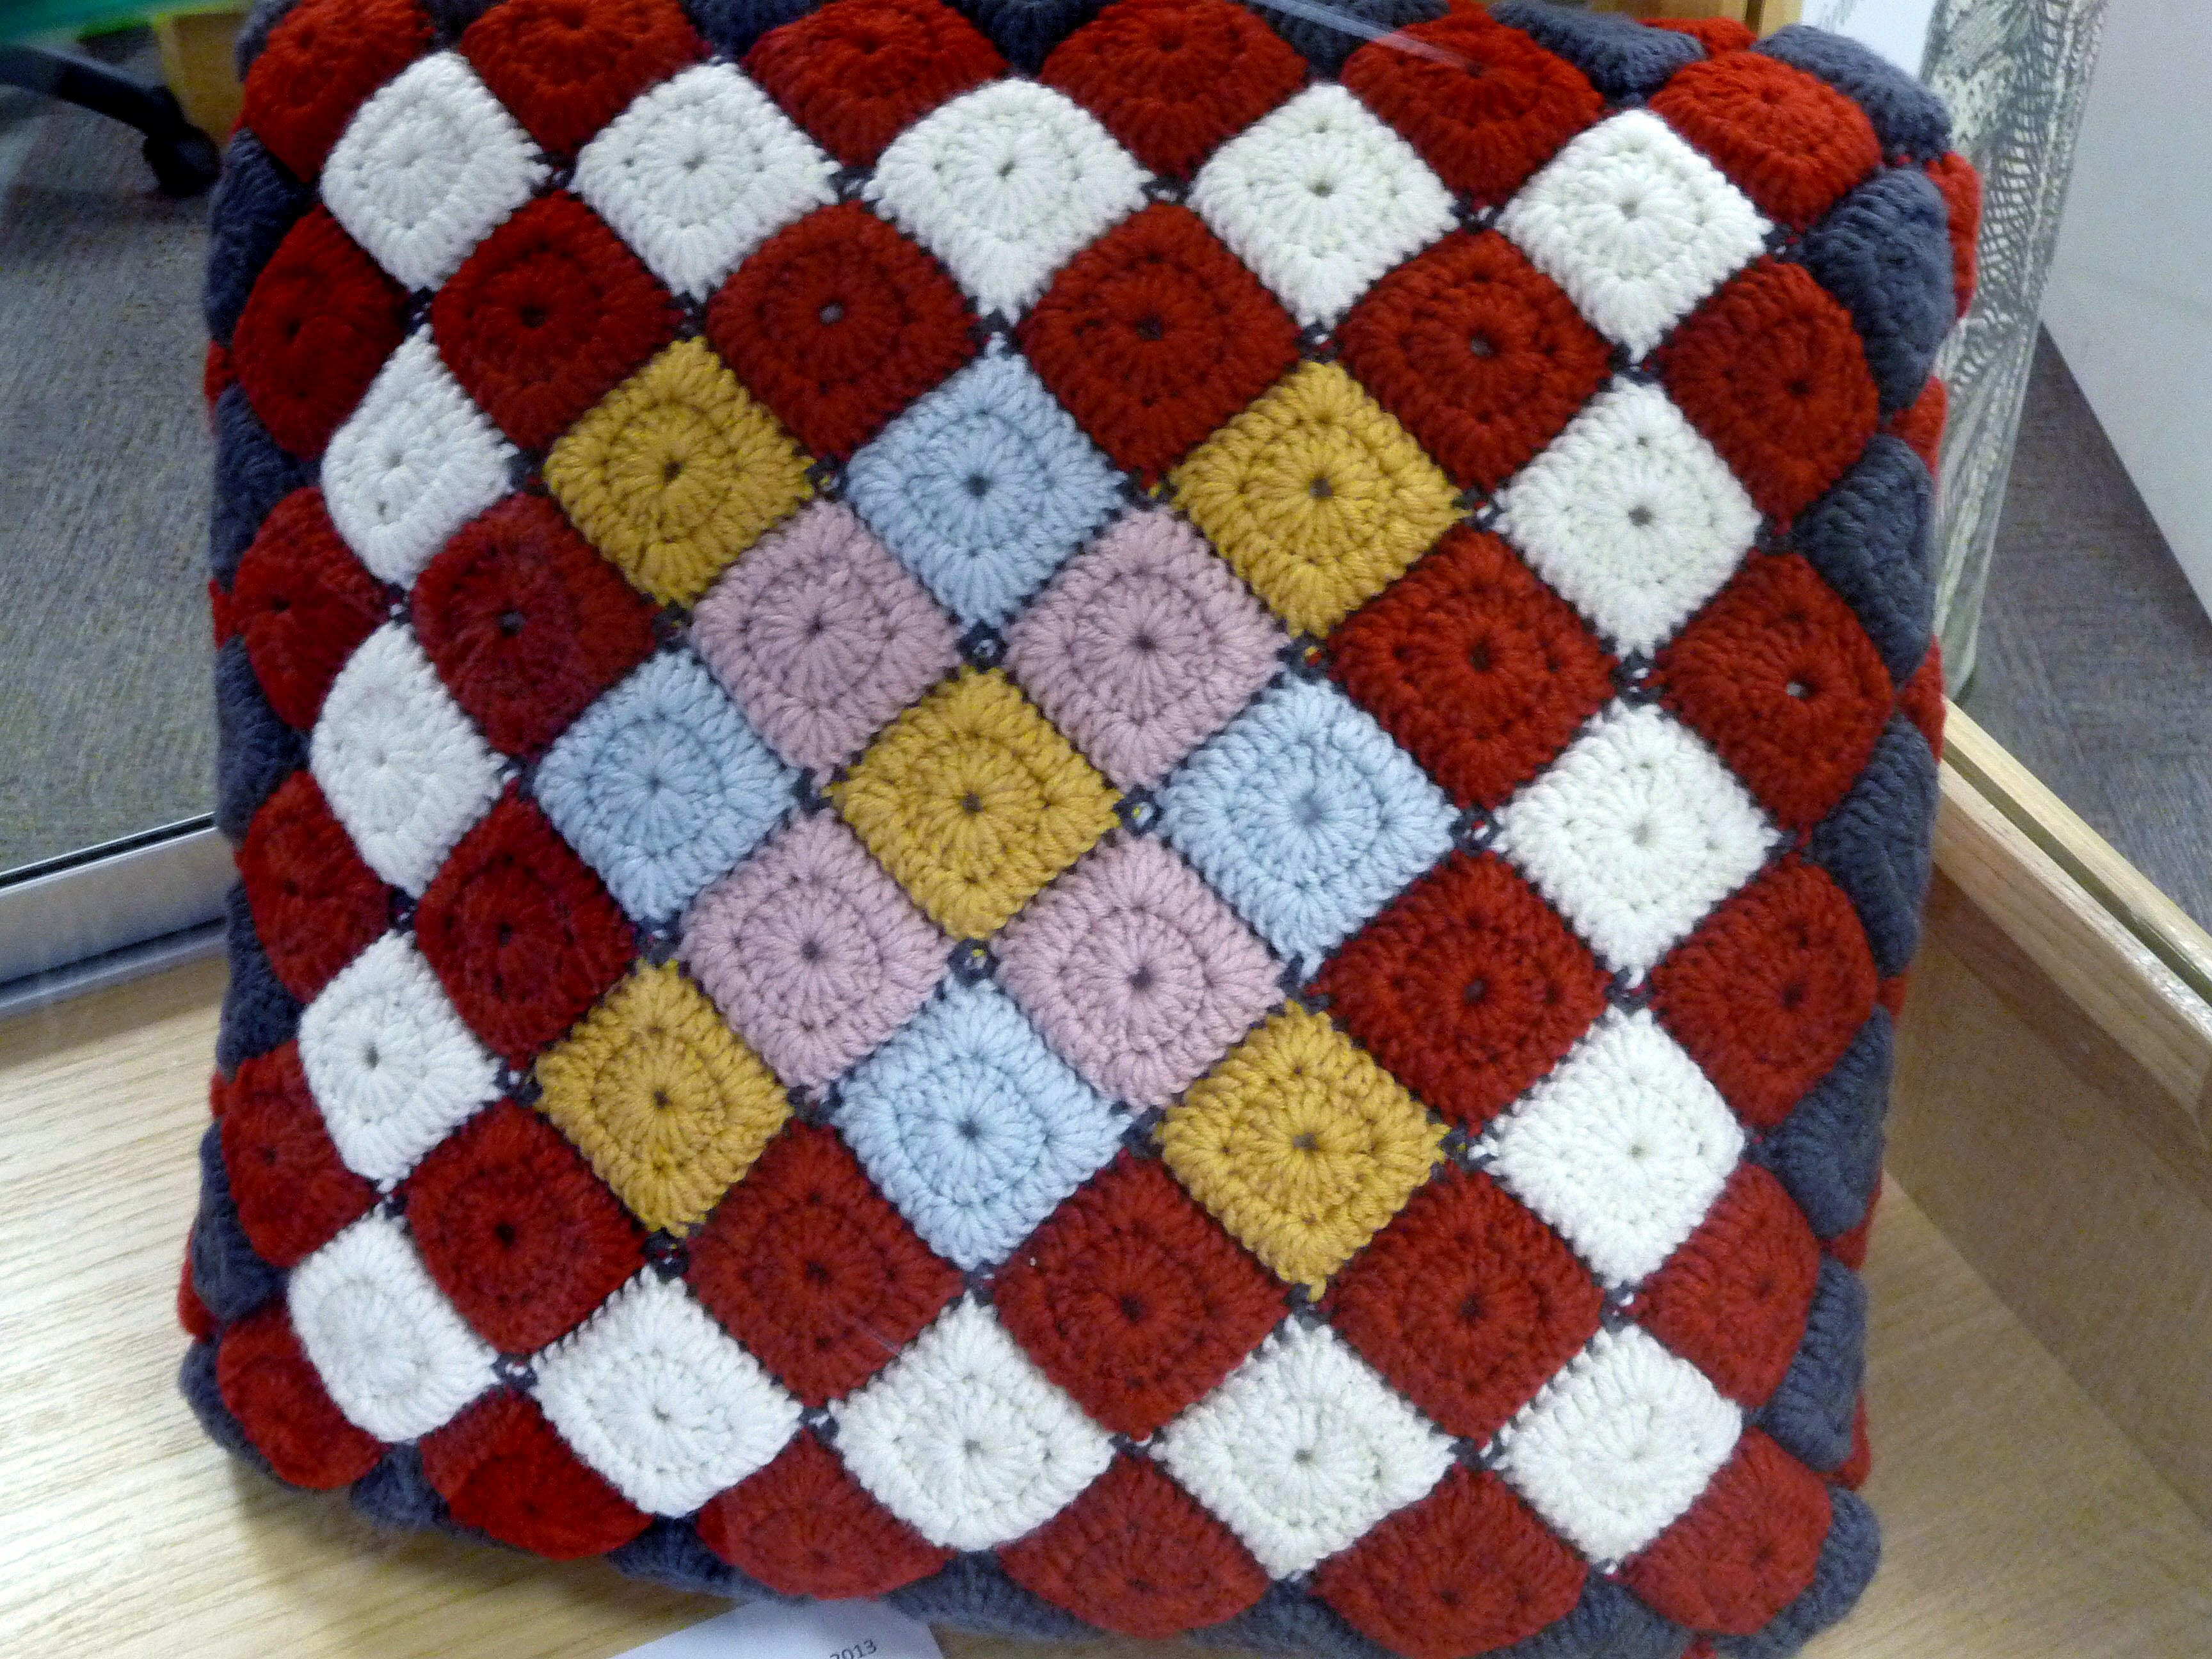 CROCHET CUSHION by Emma Varnam, inspired by a patchwork quilt in Gawthorpe Hall